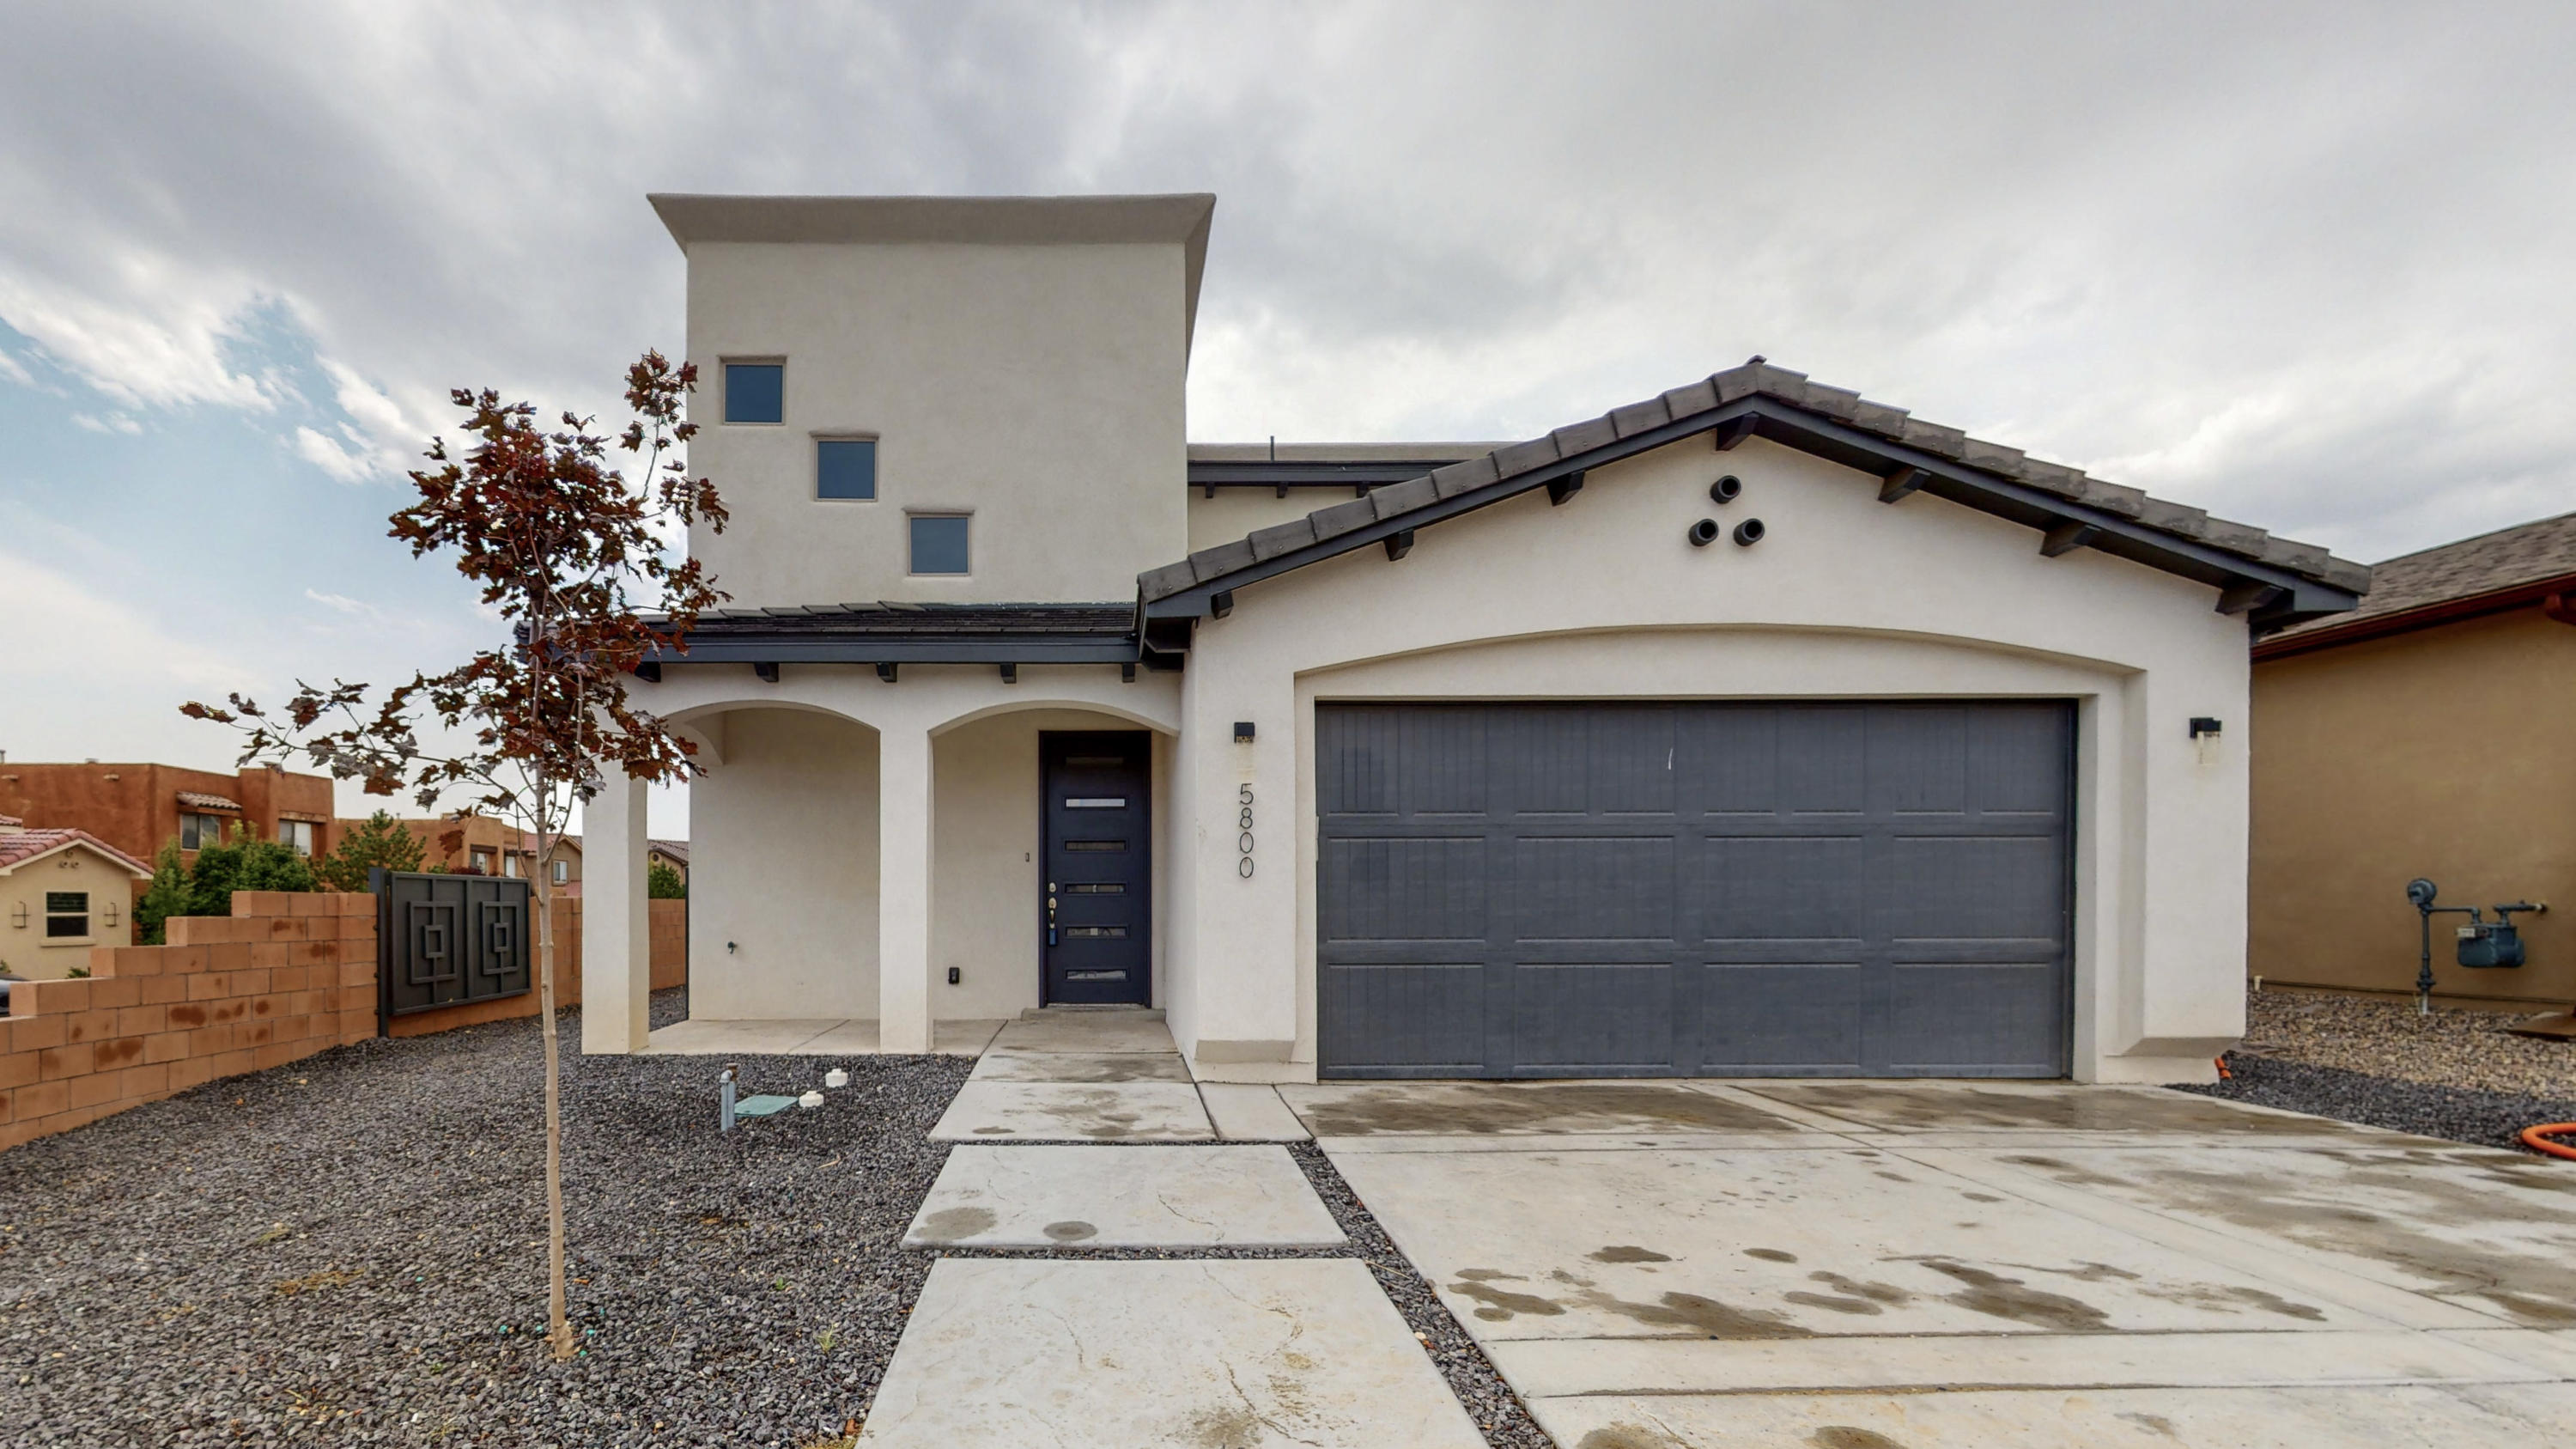 Beautifully done Twilight Home located on a corner lot in the Paradise View community! Great open floor plan with space for everyone hosting 2,667sf with 4 bedrooms, 3.5 bathrooms and a loft. Stunning kitchen with upgraded white cabinetry, granite countertops, custom backsplash, stainless steel gas range, microwave, dishwasher, refrigerator and dishwasher, pantry and a large island with seating space. Spacious living area with a gas fireplace and wood look floors. First floor owners suite with trayed ceilings and a private bath. Bath hosts dual sinks, an over sized vanity, jetted tub, walk-n shower with tile surround and a walk-in closet. Upstairs enjoy the loft space perfect for a kids living area. Outside find a covered patio, nice yard space fully walled for privacy.